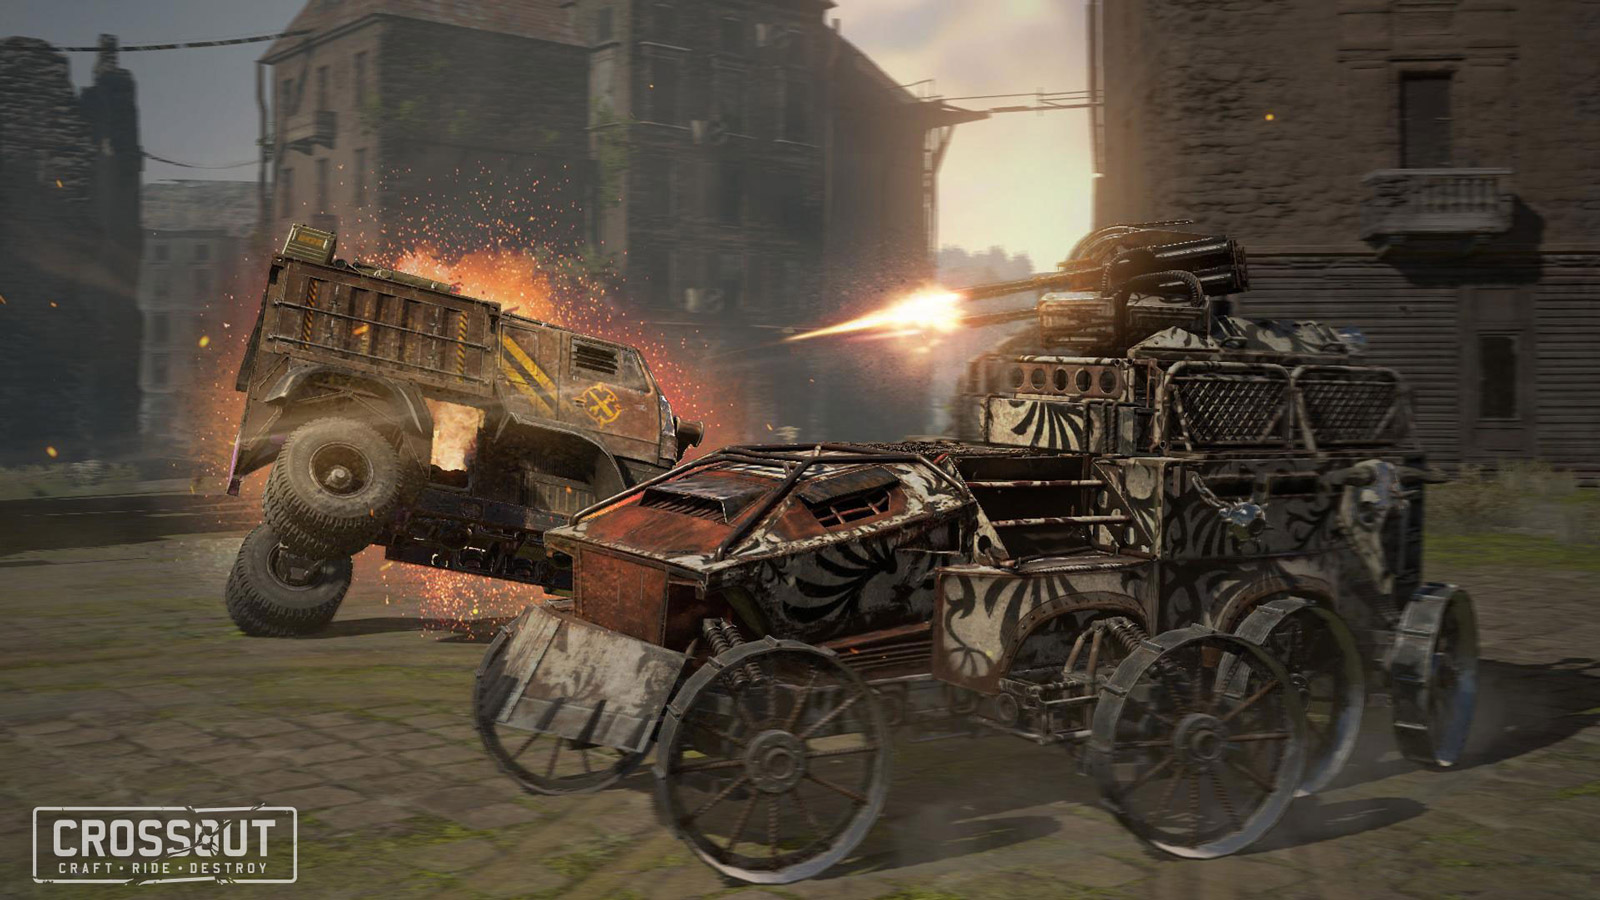 Crossout Wallpaper in 1600x900